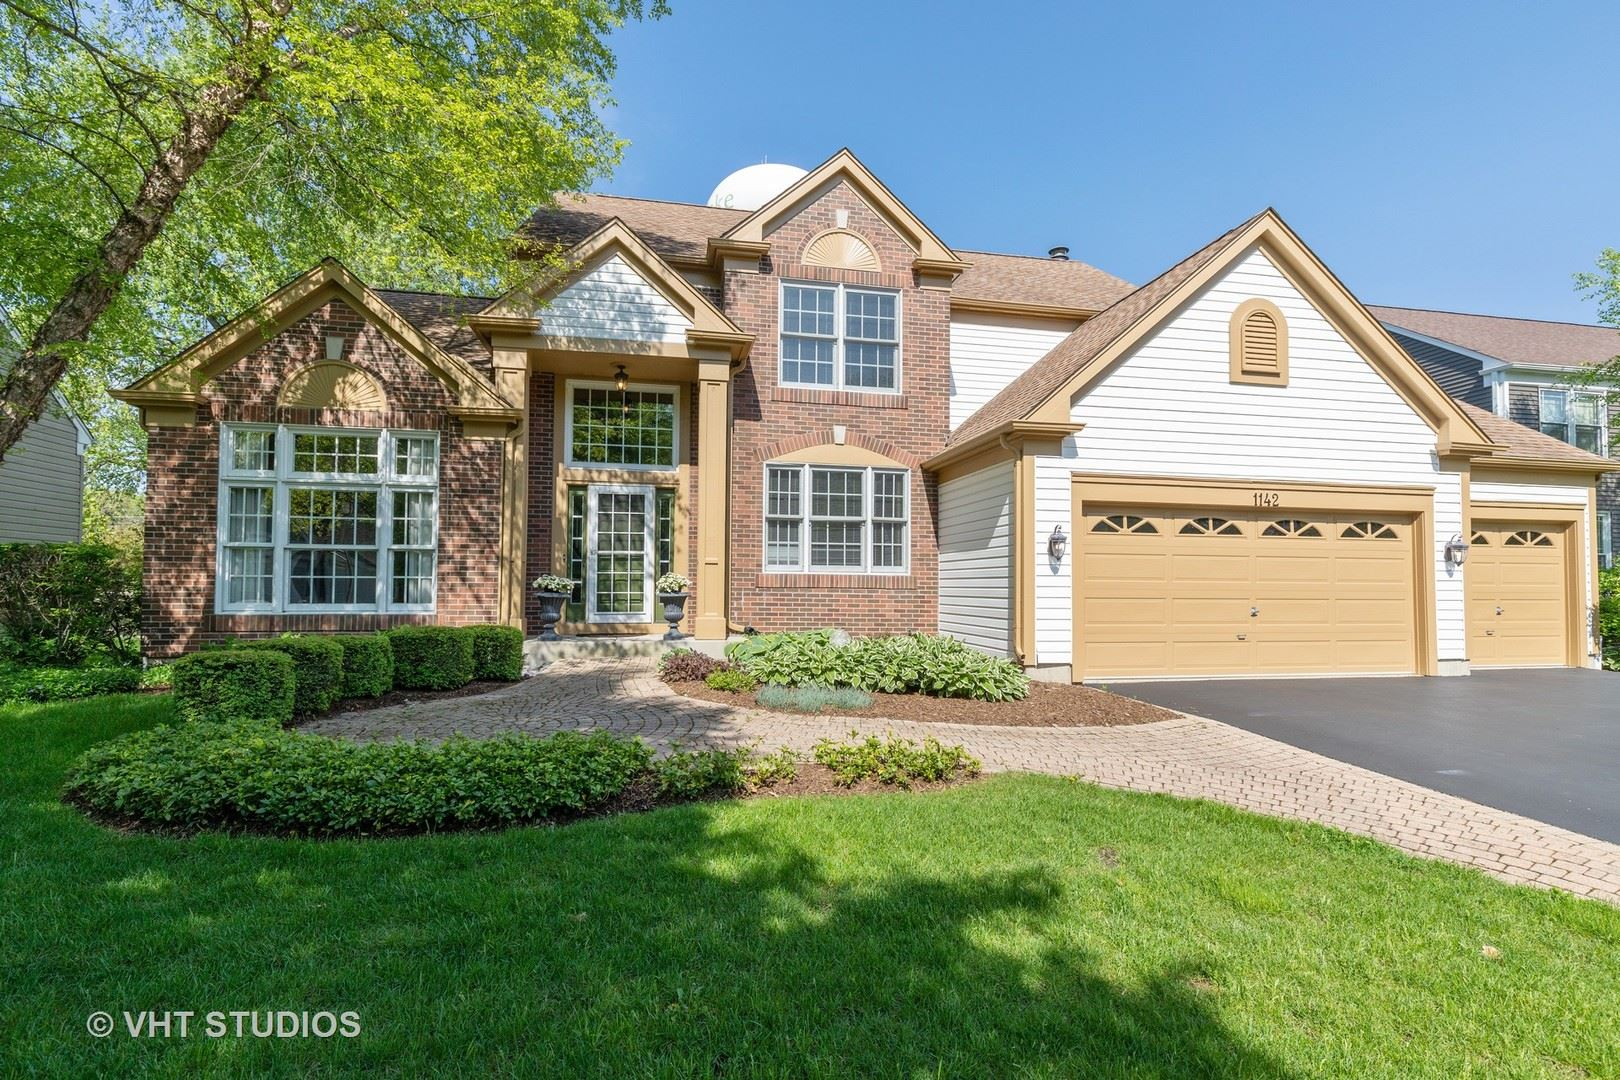 1142 Williamsburg Circle, Grayslake, IL 60030 - #: 10640951